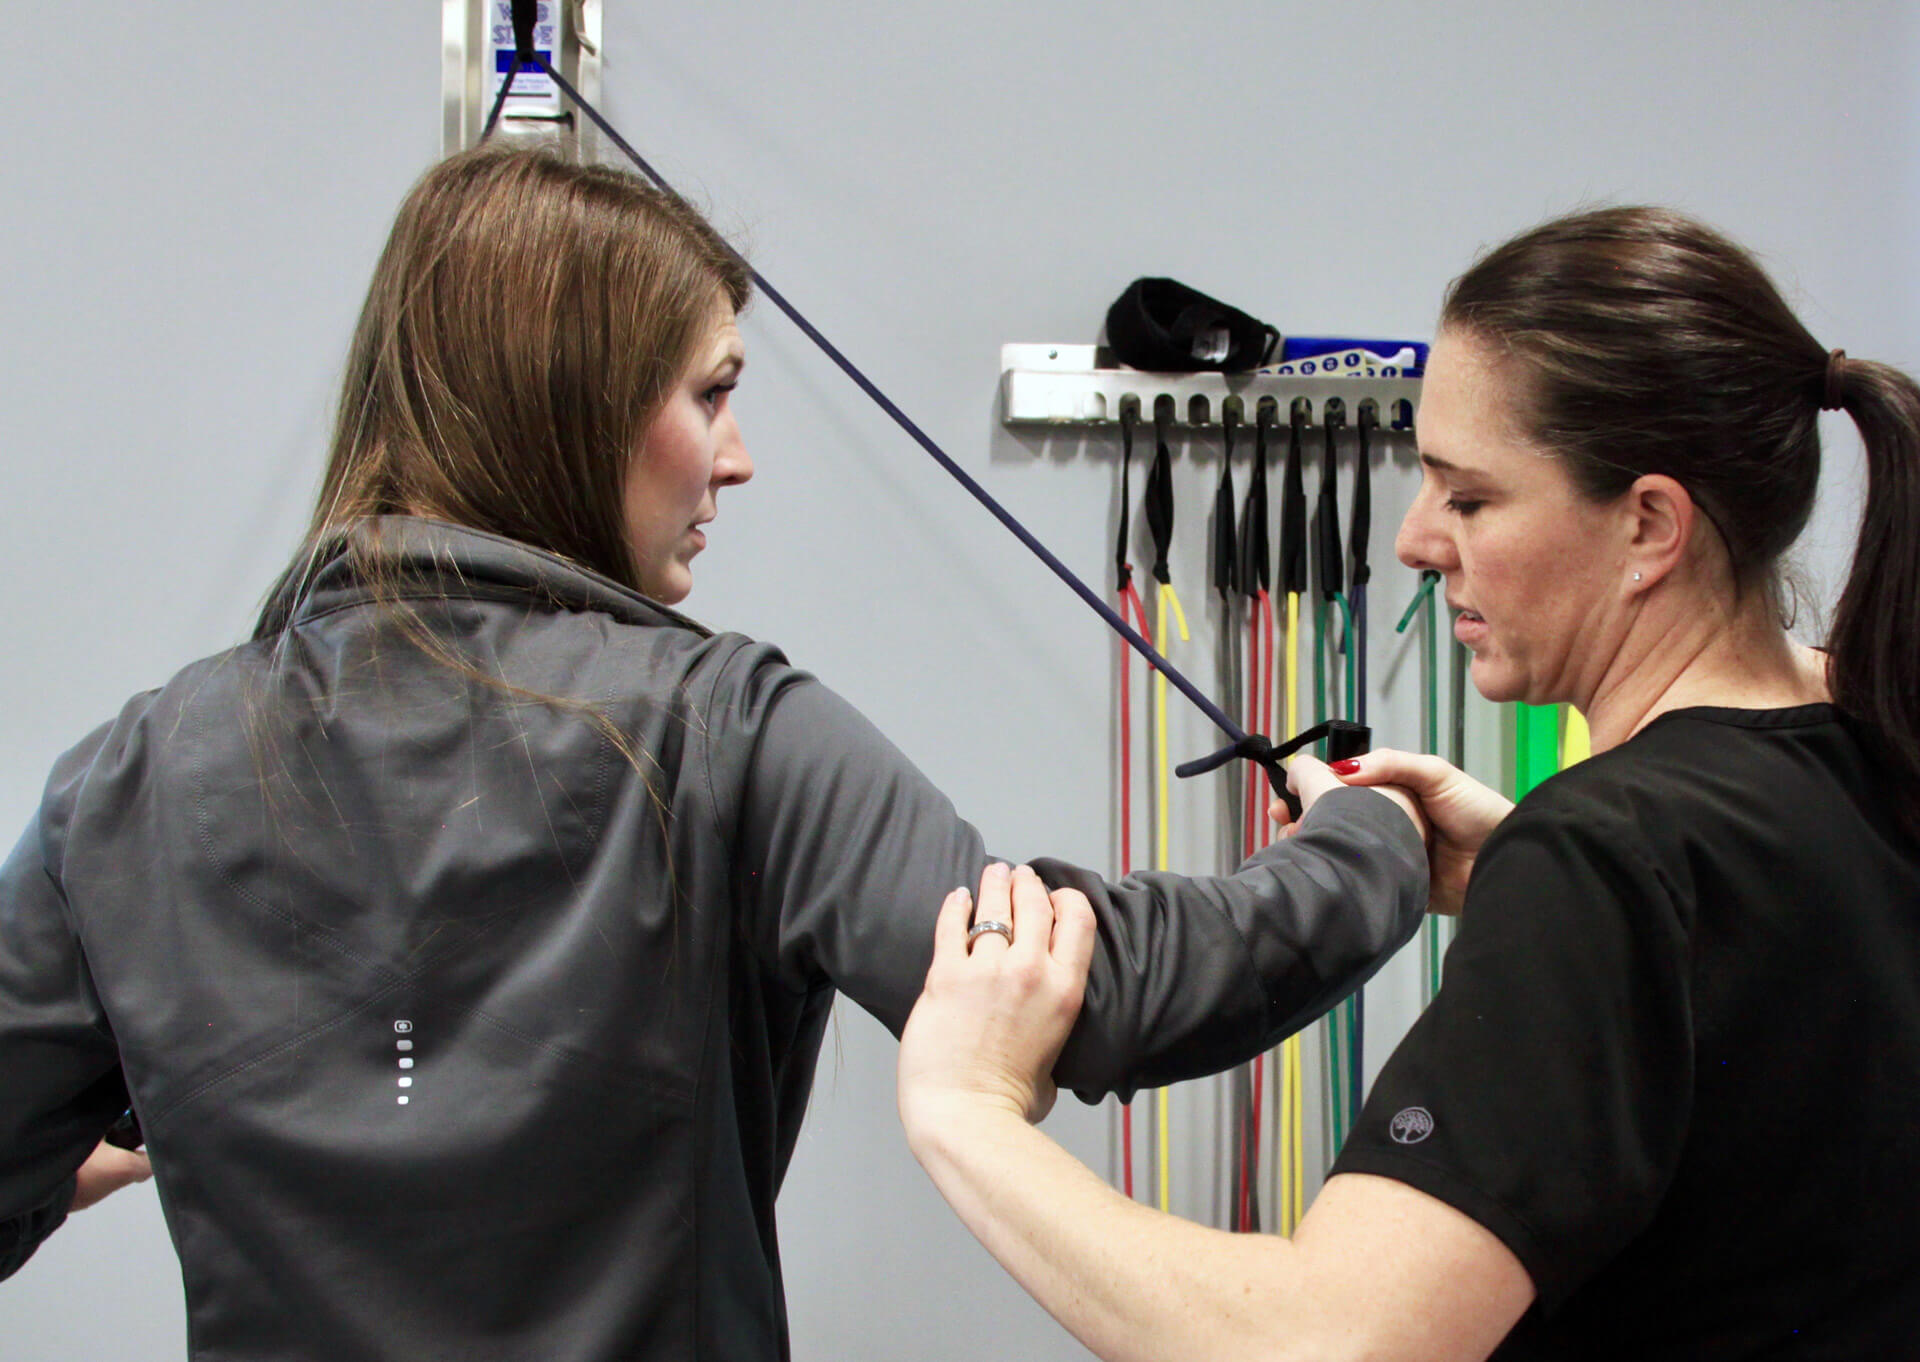 Physical therapist works through conventional therapy exercises with patient.